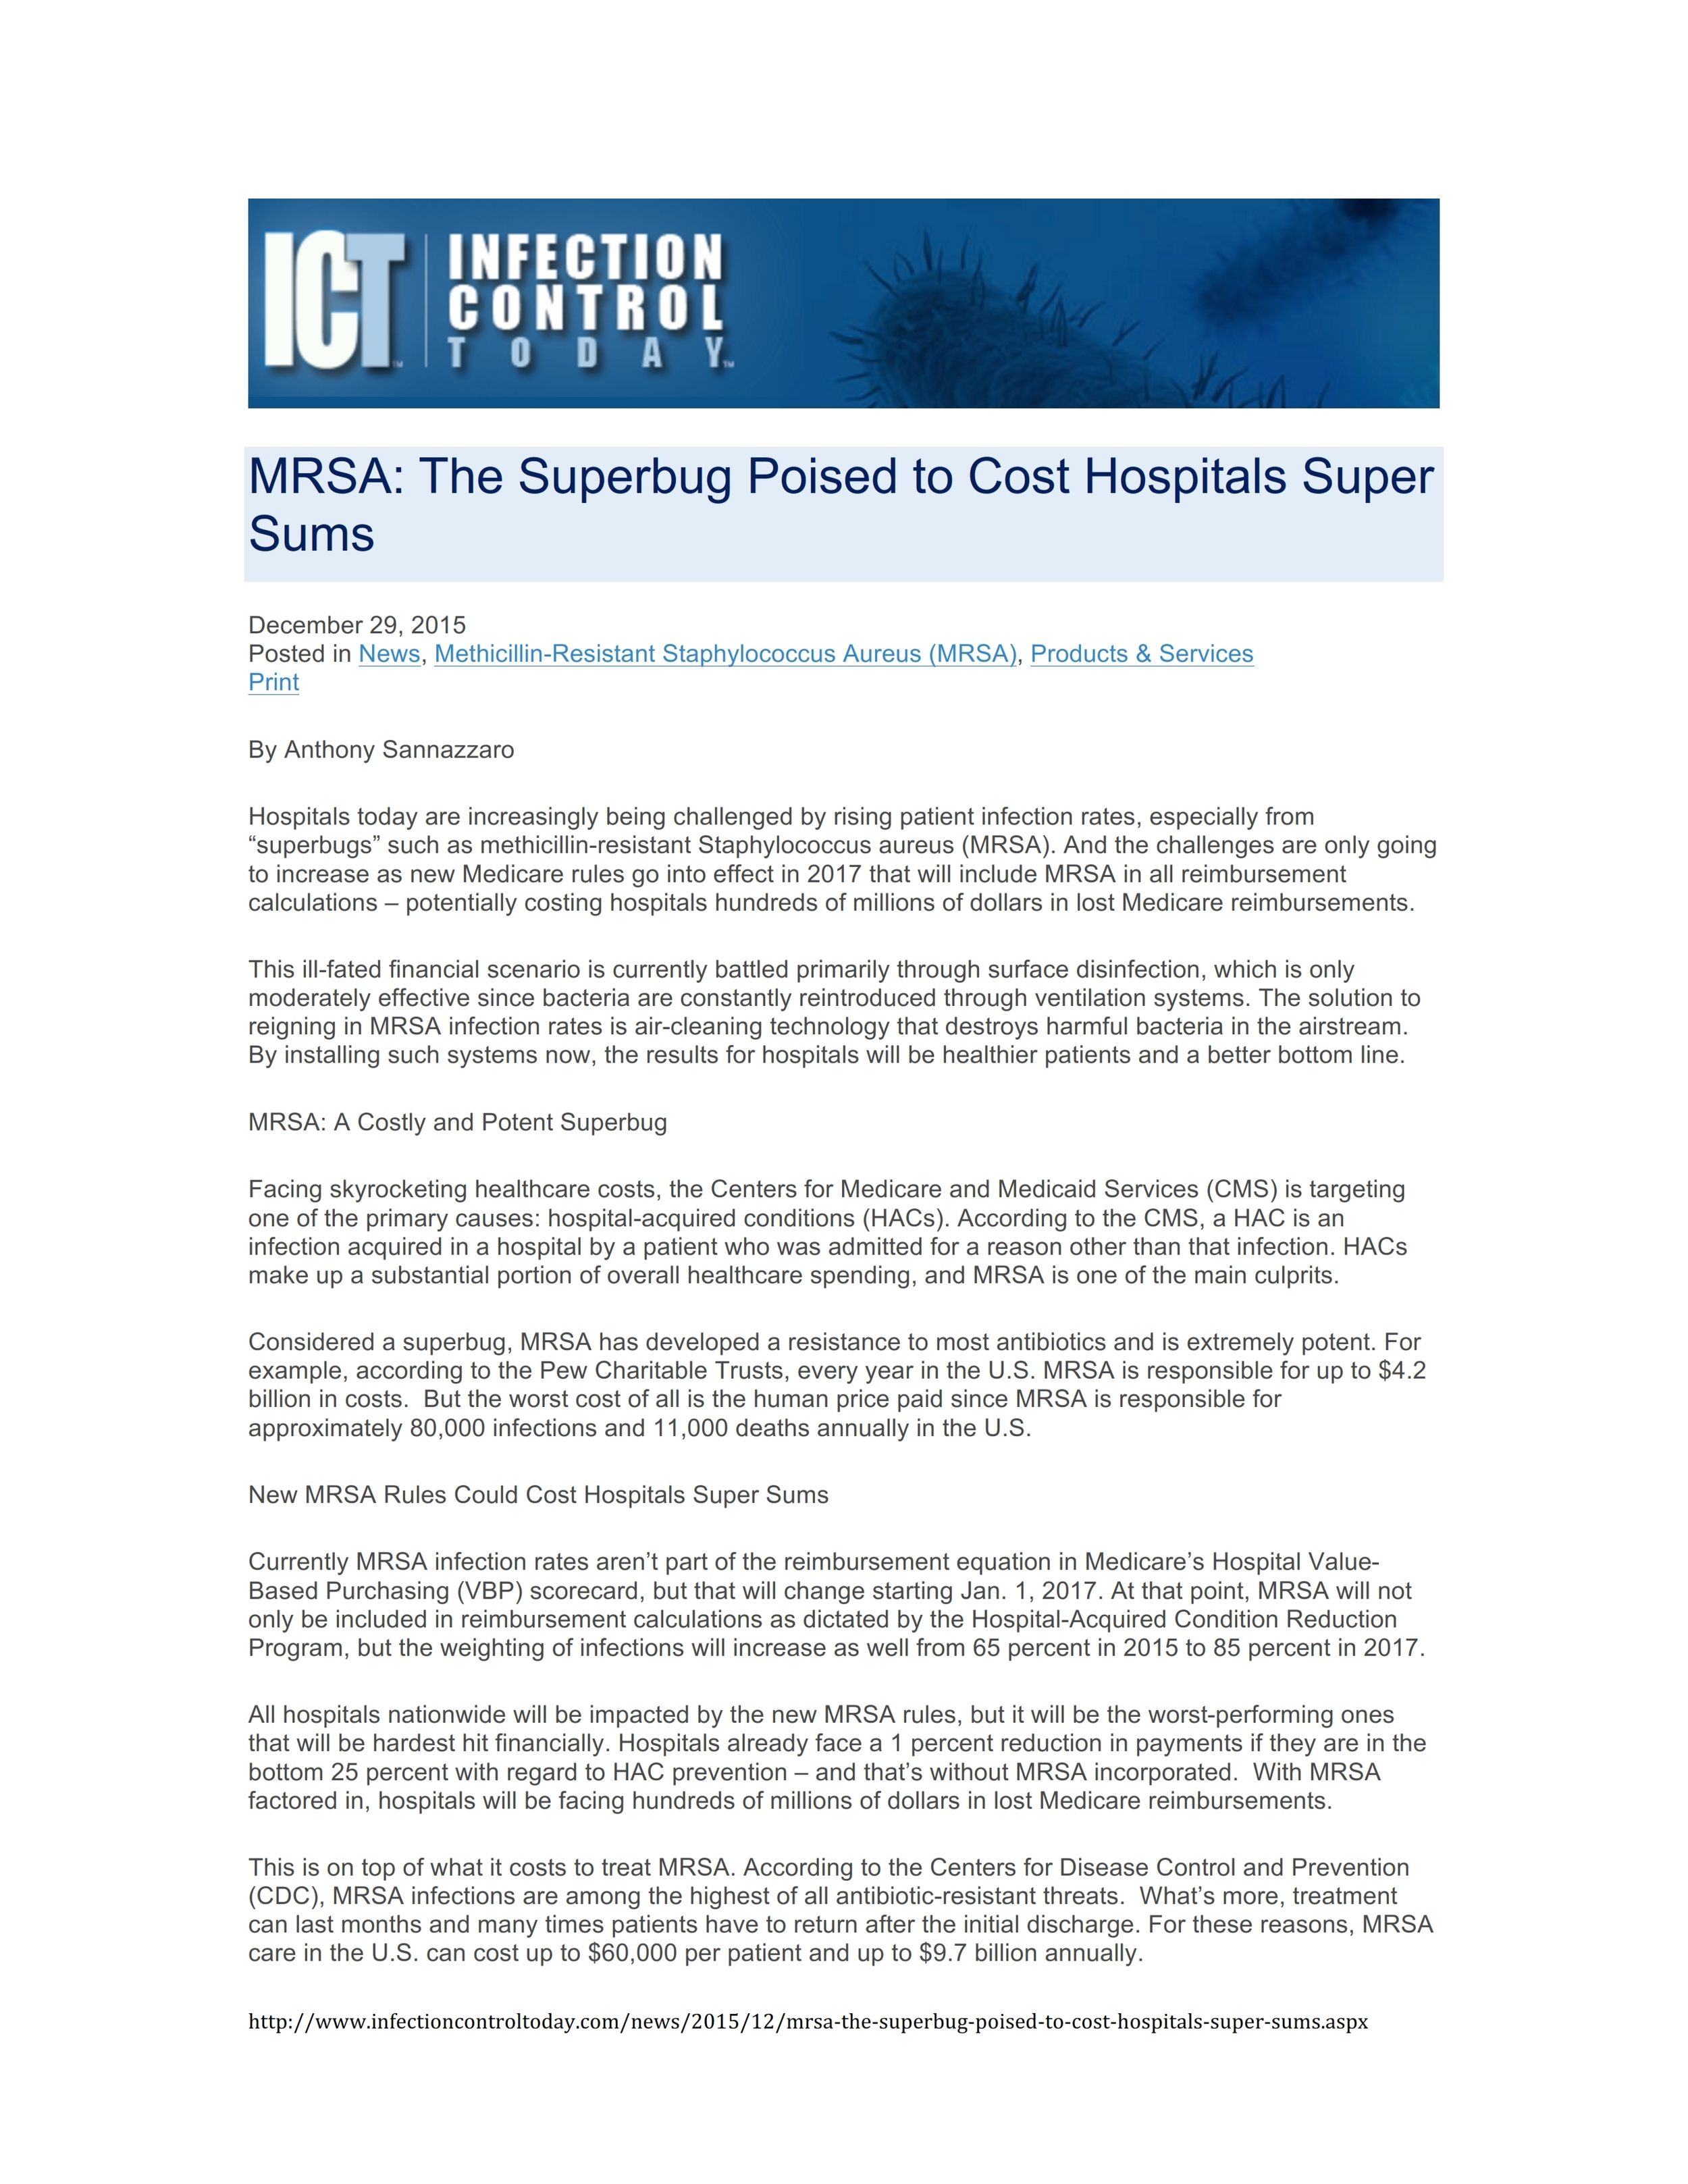 Download our article from Infection Control Today